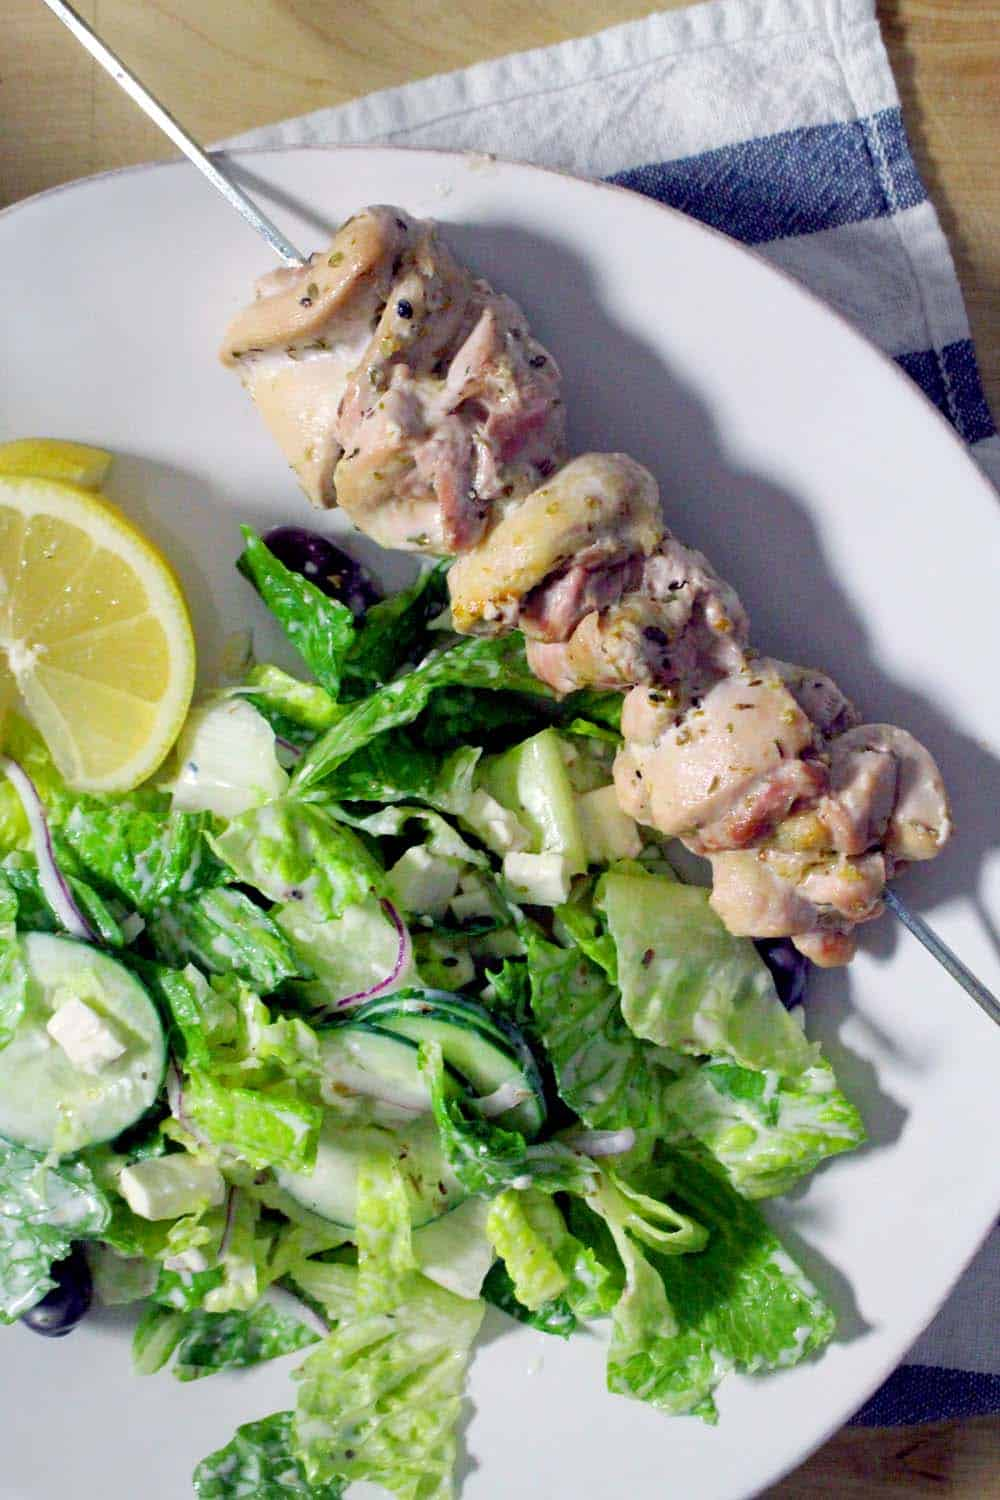 Lemon Chicken Souvlaki and Salad | This meal is healthy, hearty, easy to make, and bursting with Greek flavor. The chicken is marinated in a delicious, yogurt-based dressing and then baked to juicy perfection on skewers. The extra dressing is used on a traditional Greek salad.